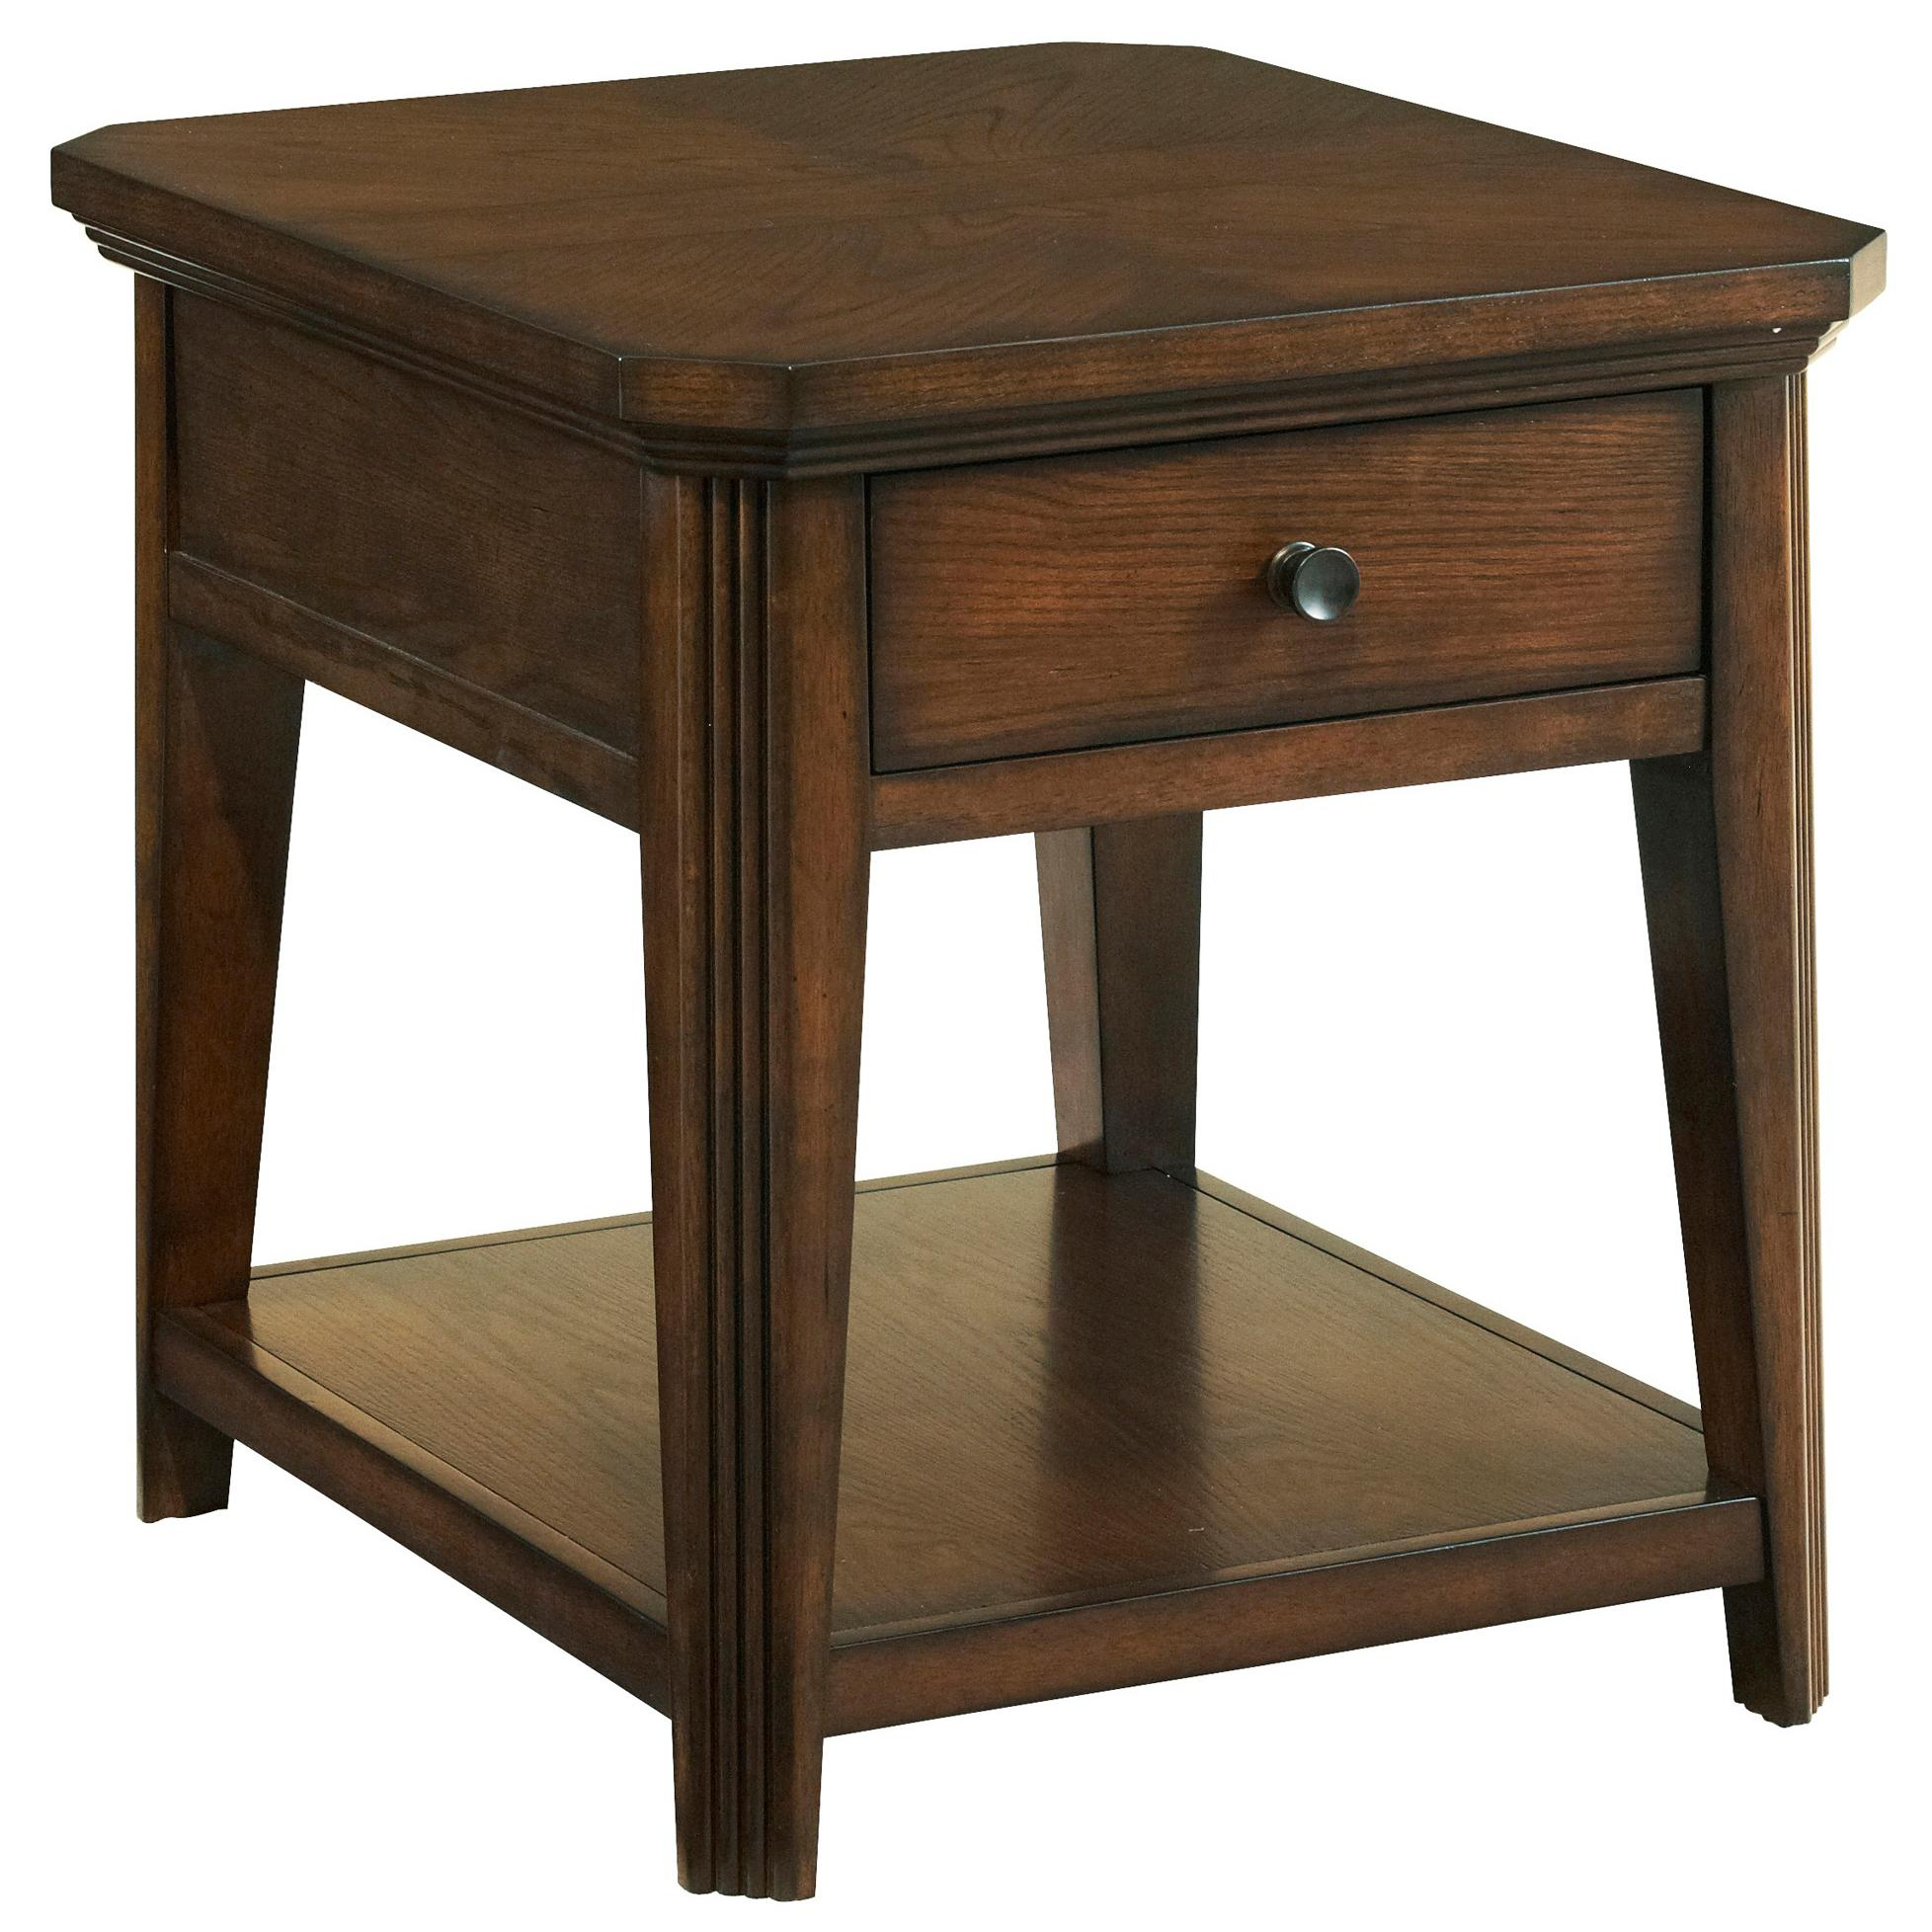 Broyhill Furniture Estes Park Drawer End Table - Item Number: 4364-002